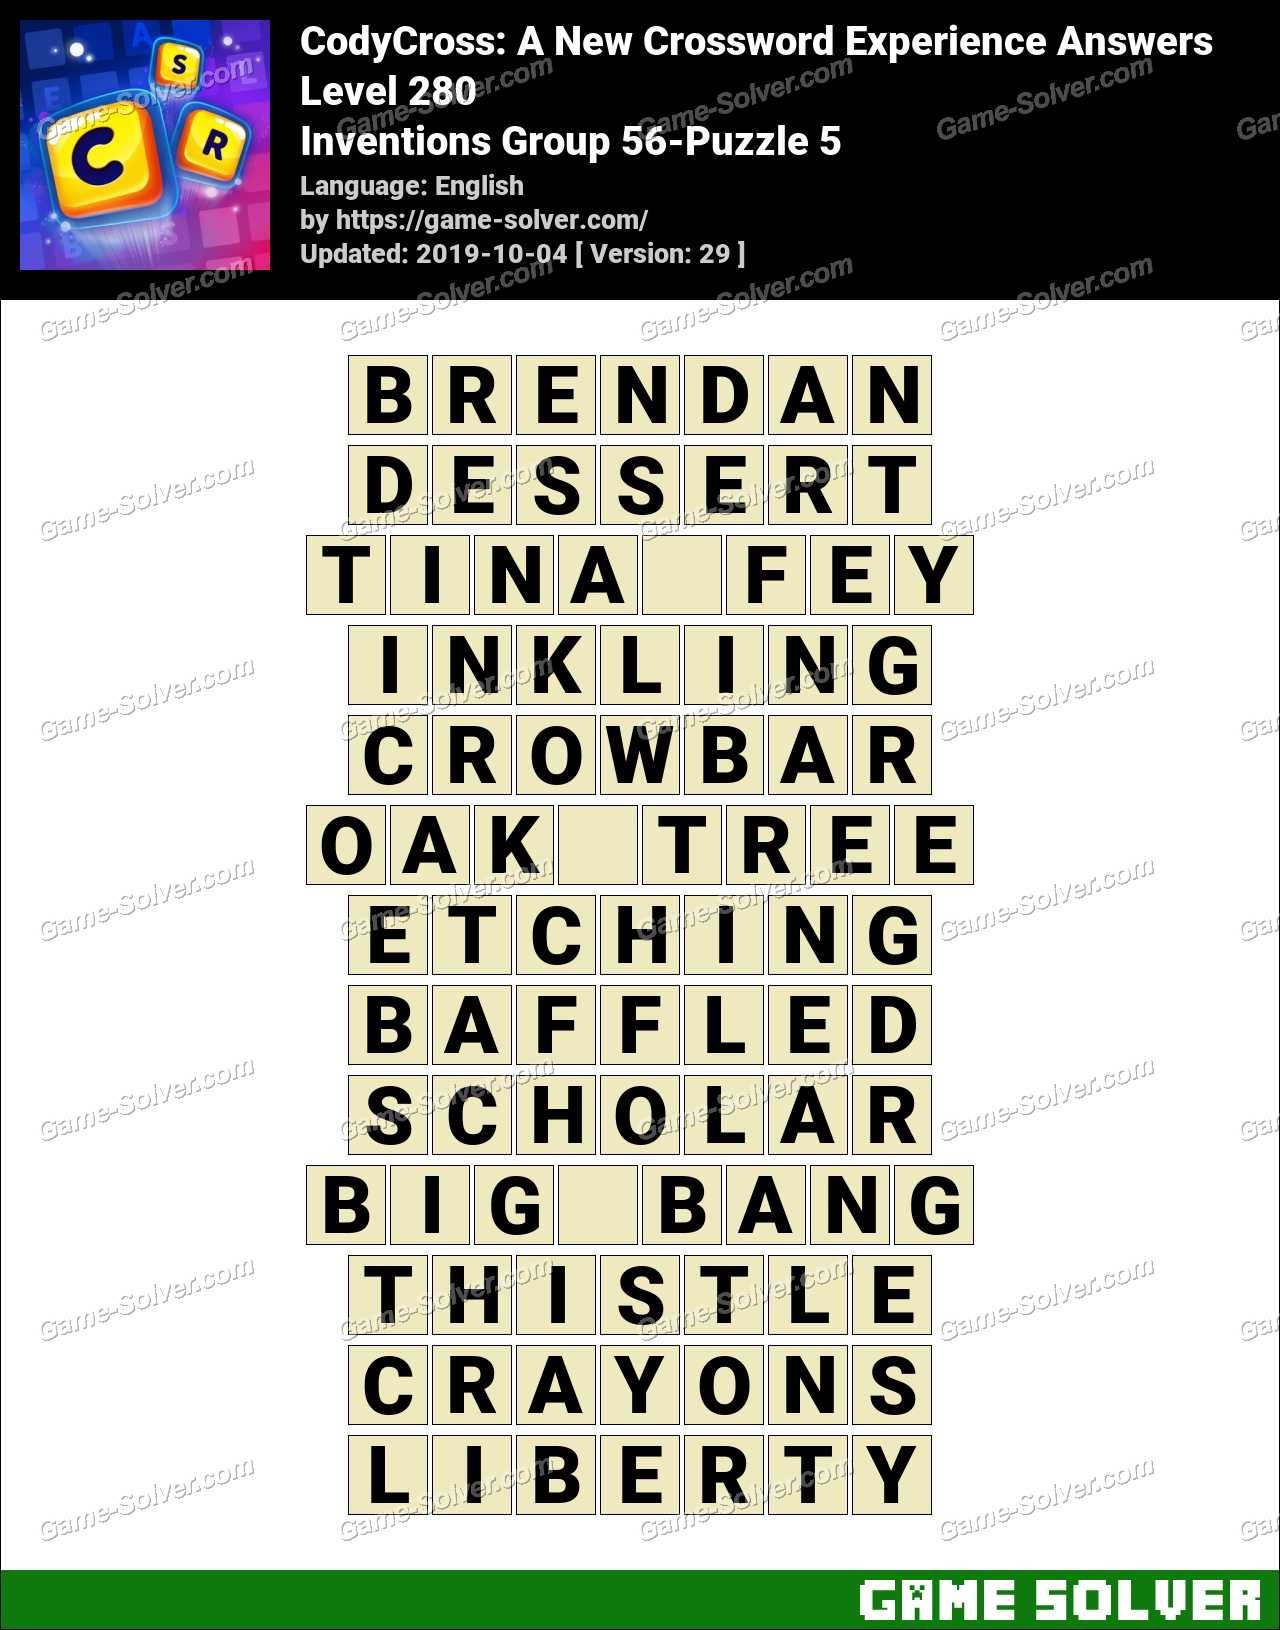 CodyCross Inventions Group 56-Puzzle 5 Answers